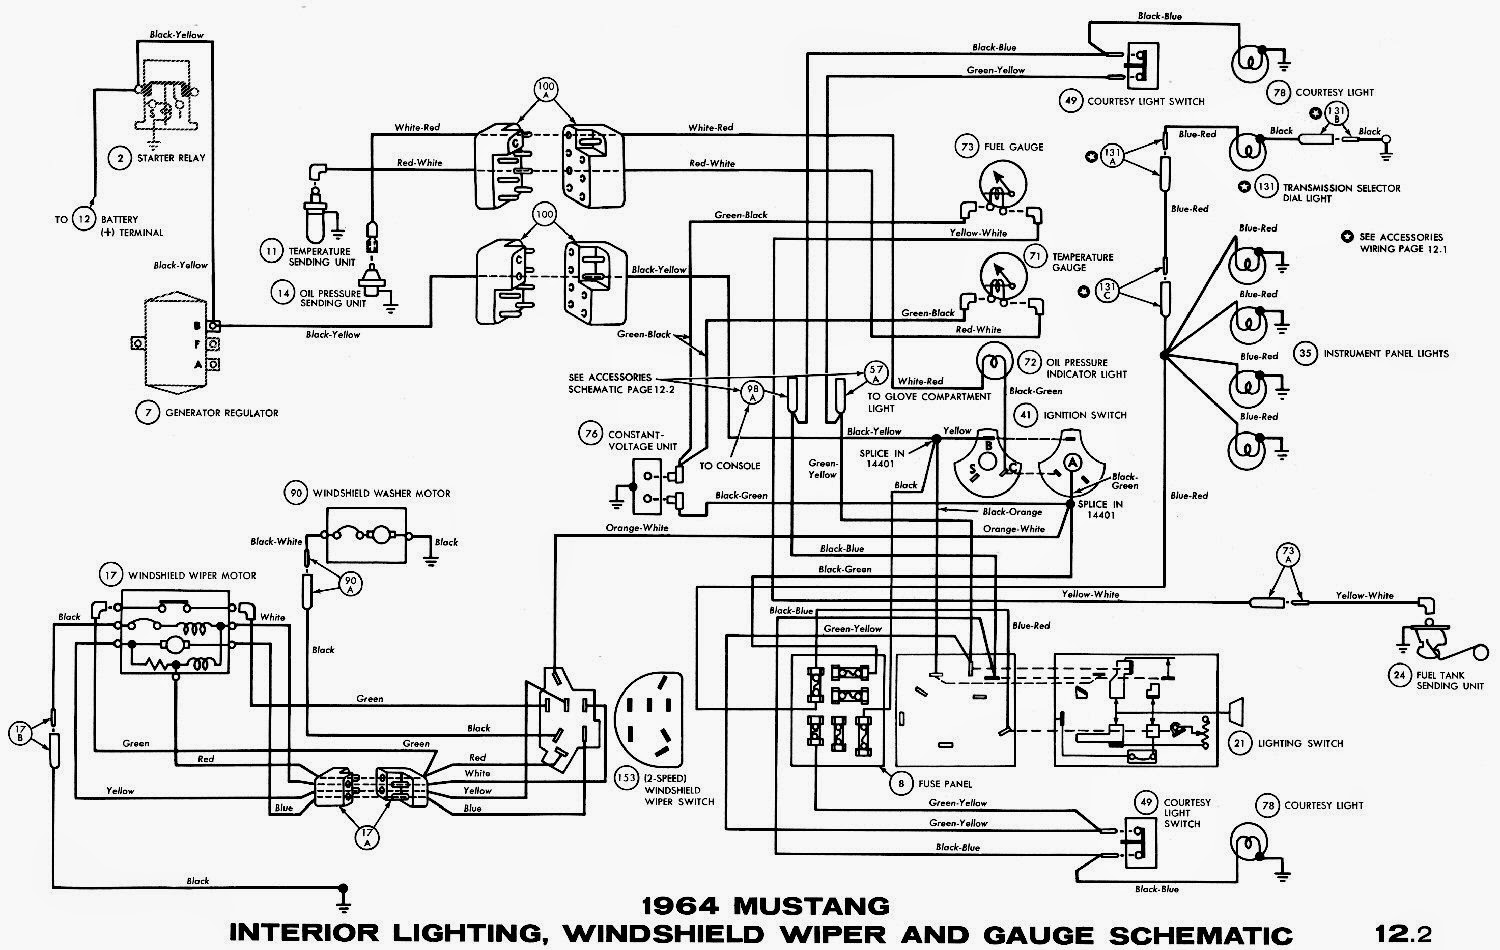 1964 Mustang Wiring Diagrams on 1988 Jeep Cherokee Wiring Diagram